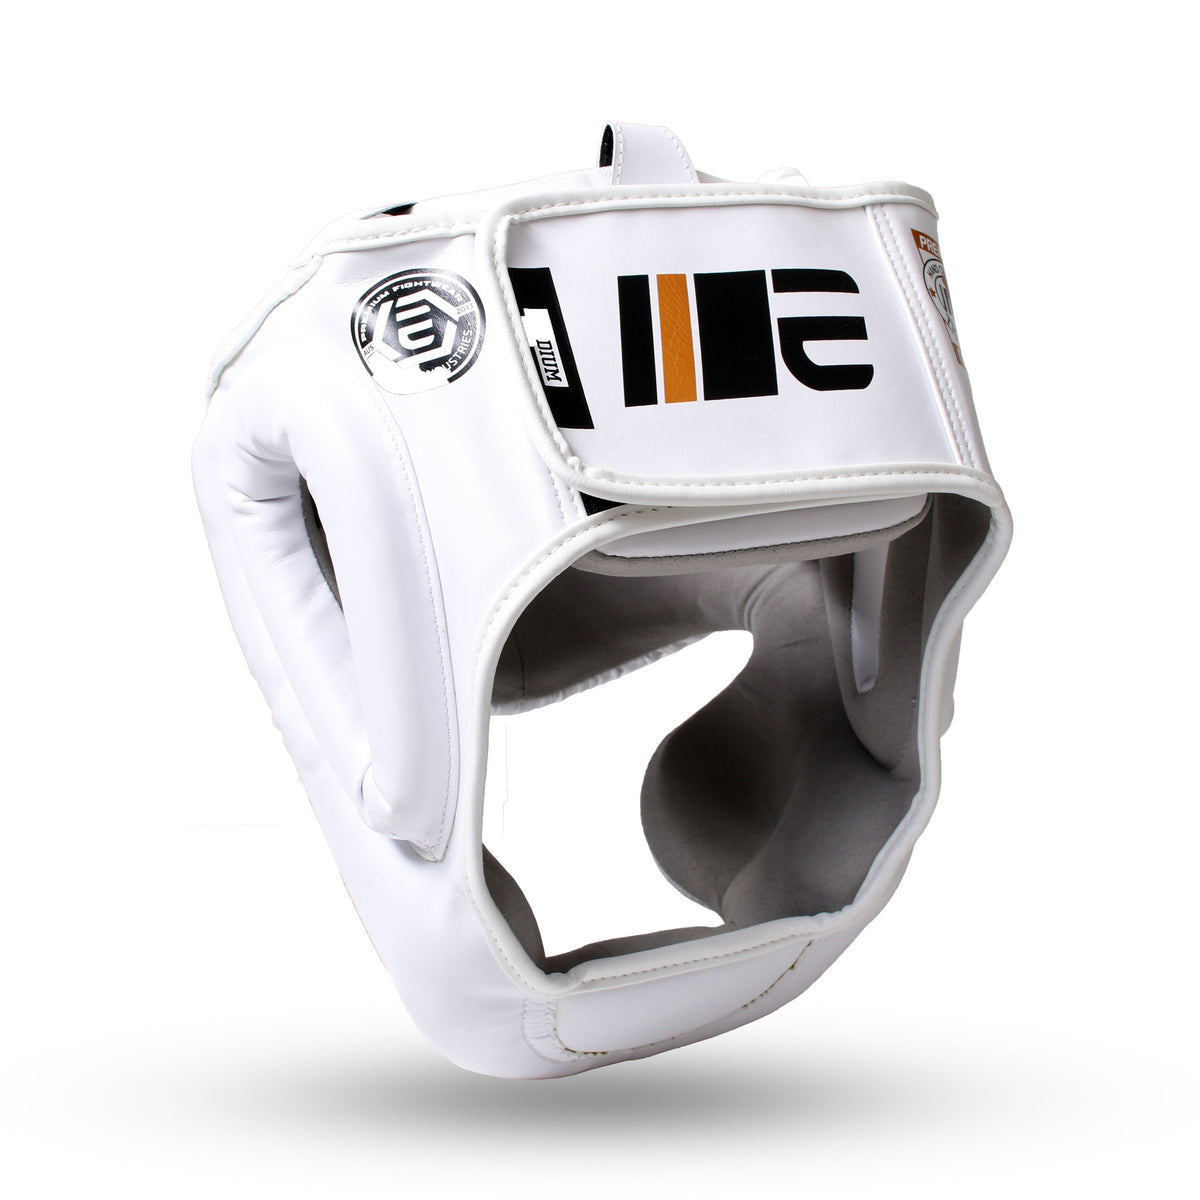 Engage Knights Headgear Protective Guard Head Gear Engage MMA Online Fight Store for Apparel, Fightwear and Fight Gear Equipment